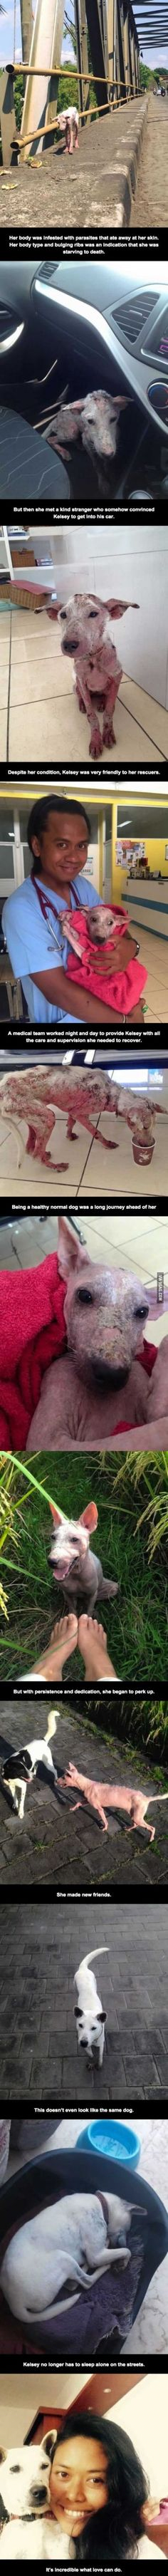 Who would do such a thing to such and kind caring dog?!!! Even after everything shes been through she still is kind to humans who were possibly the reason how she end up that way. EARTH IS FOR ALL LIFE NOT JUST HUMAN LIFE!!!!!!